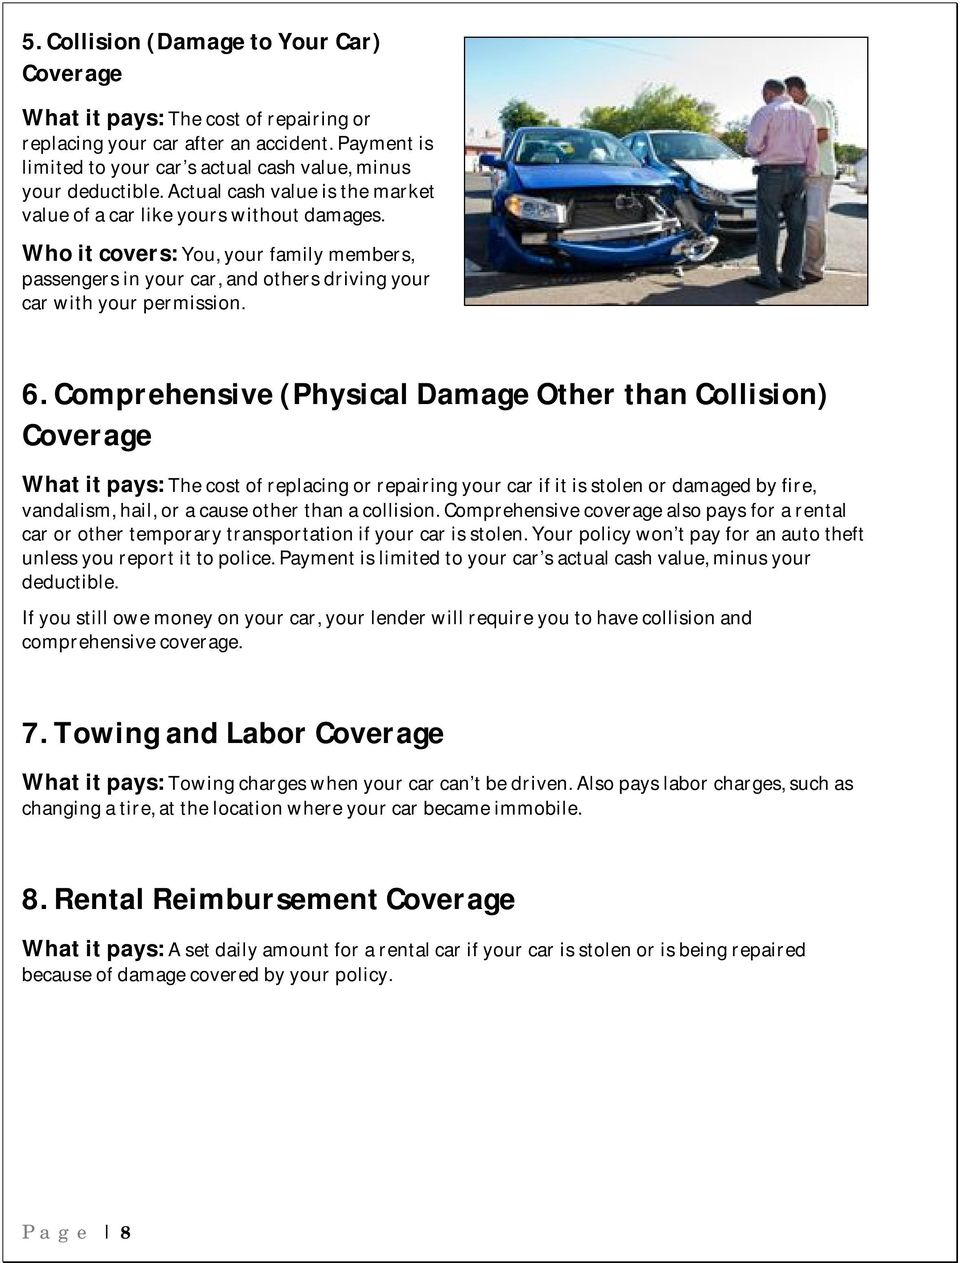 Comprehensive (Physical Damage Other than Collision) Coverage What it pays: The cost of replacing or repairing your car if it is stolen or damaged by fire, vandalism, hail, or a cause other than a